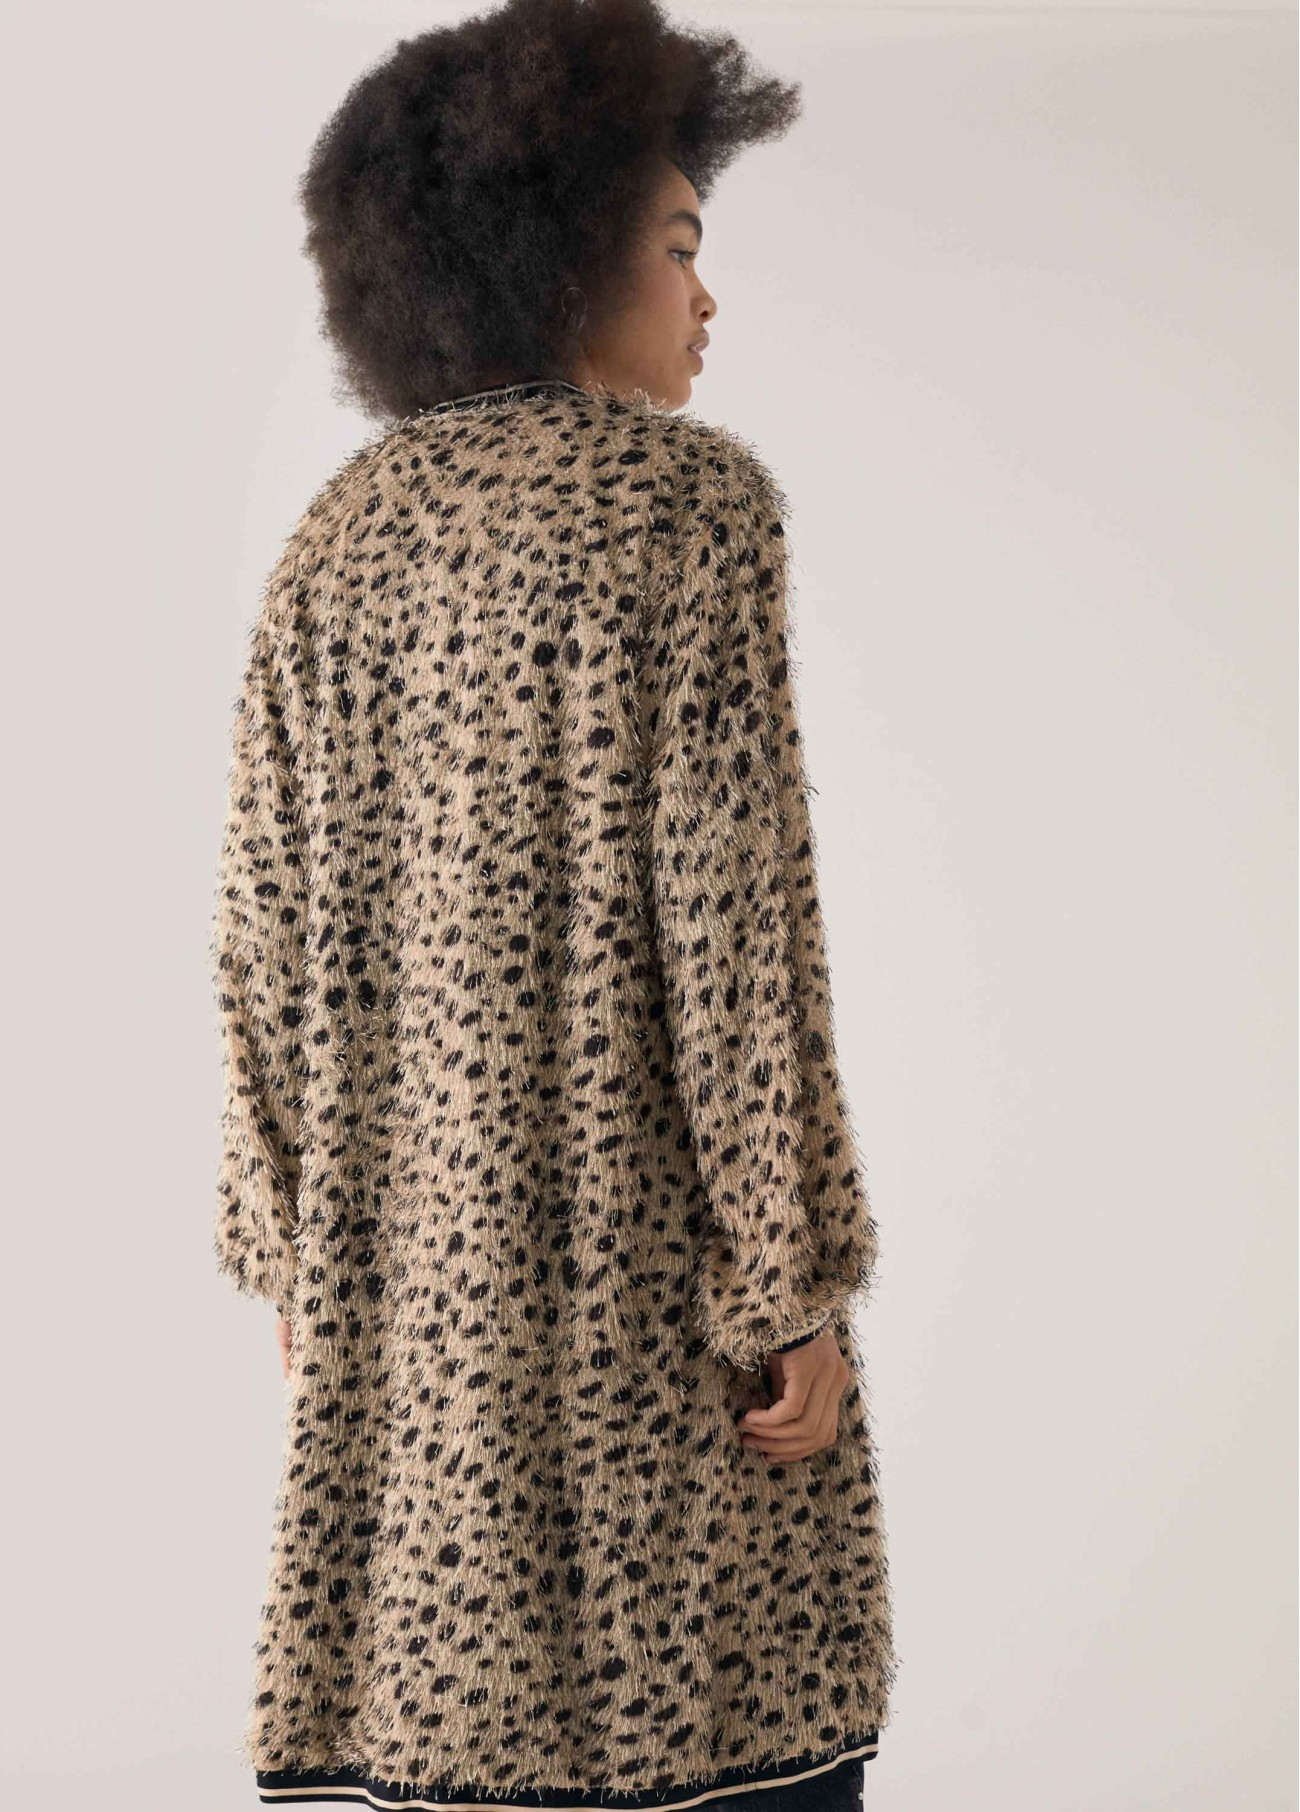 Chaqueta efecto desflecado animal print, marron 2